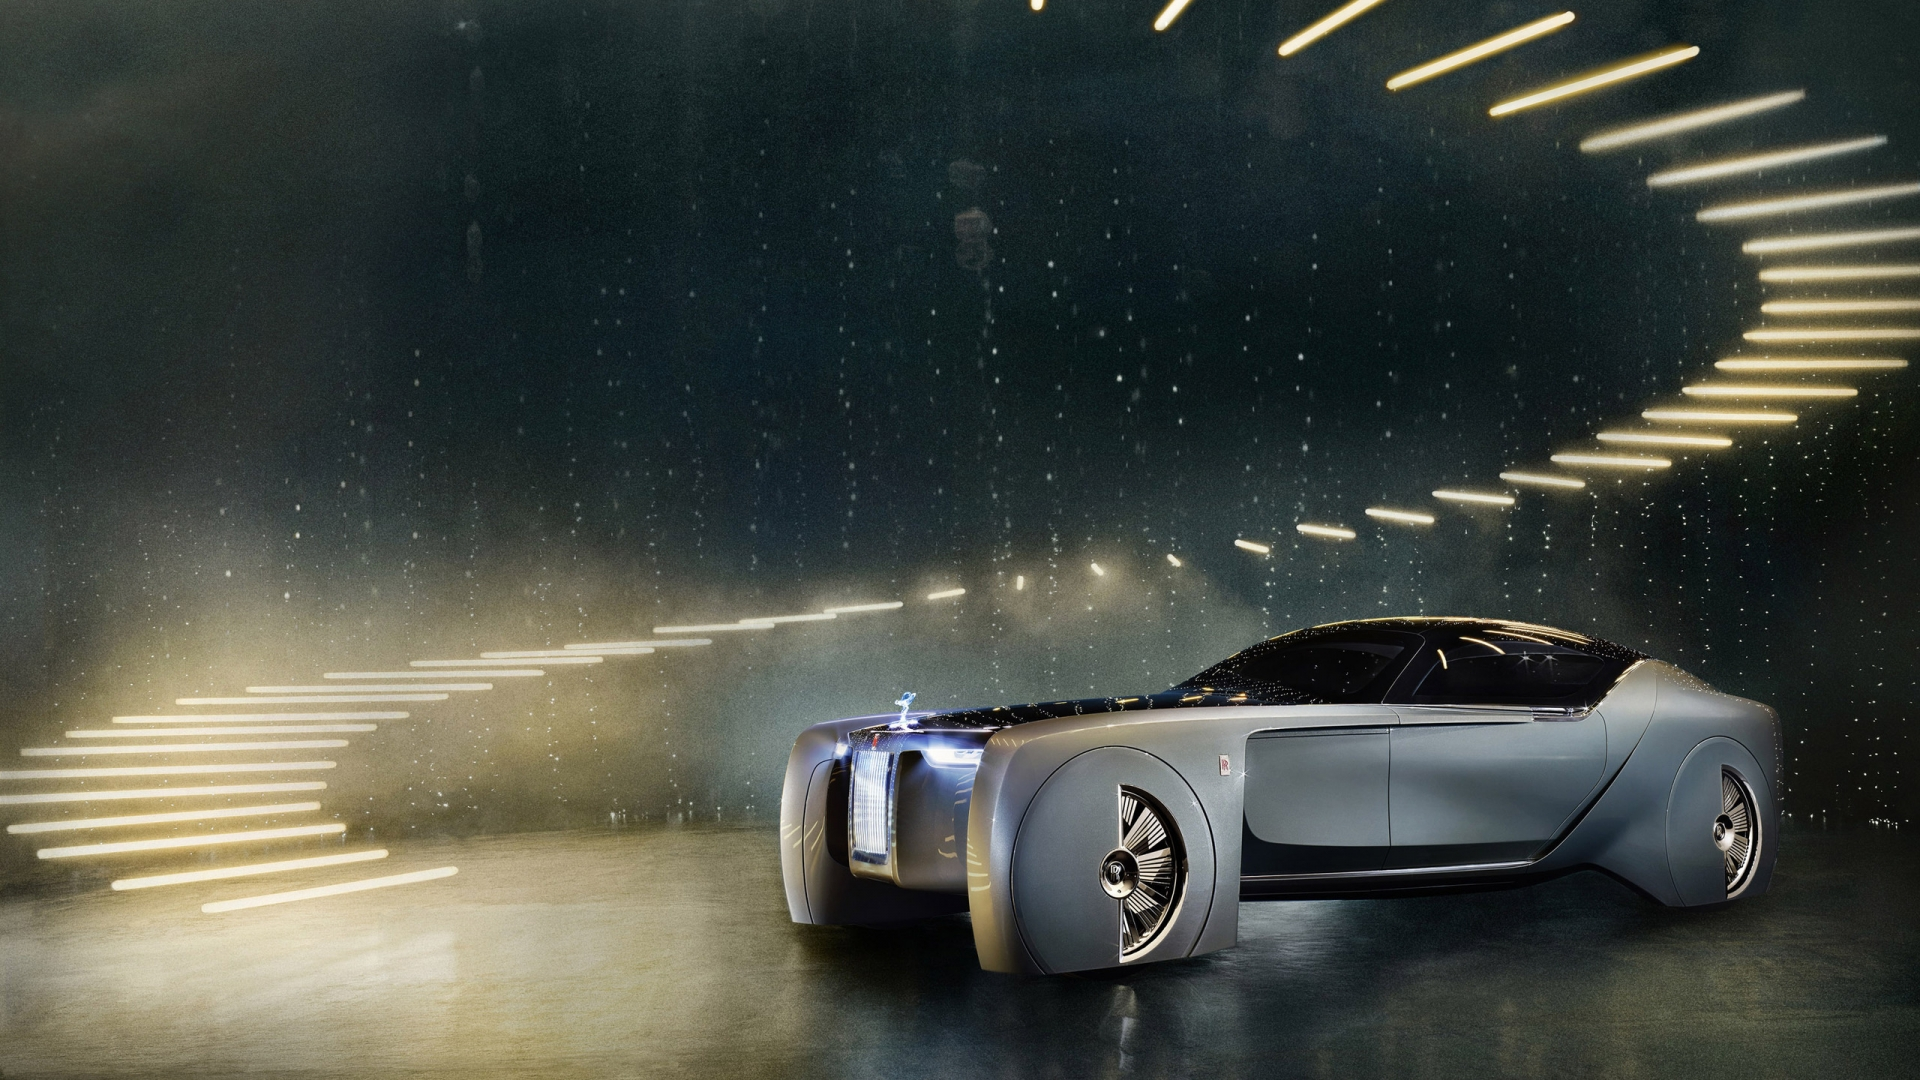 Rolls-Royce Concept Car 2016 for 1920 x 1080 HDTV 1080p resolution